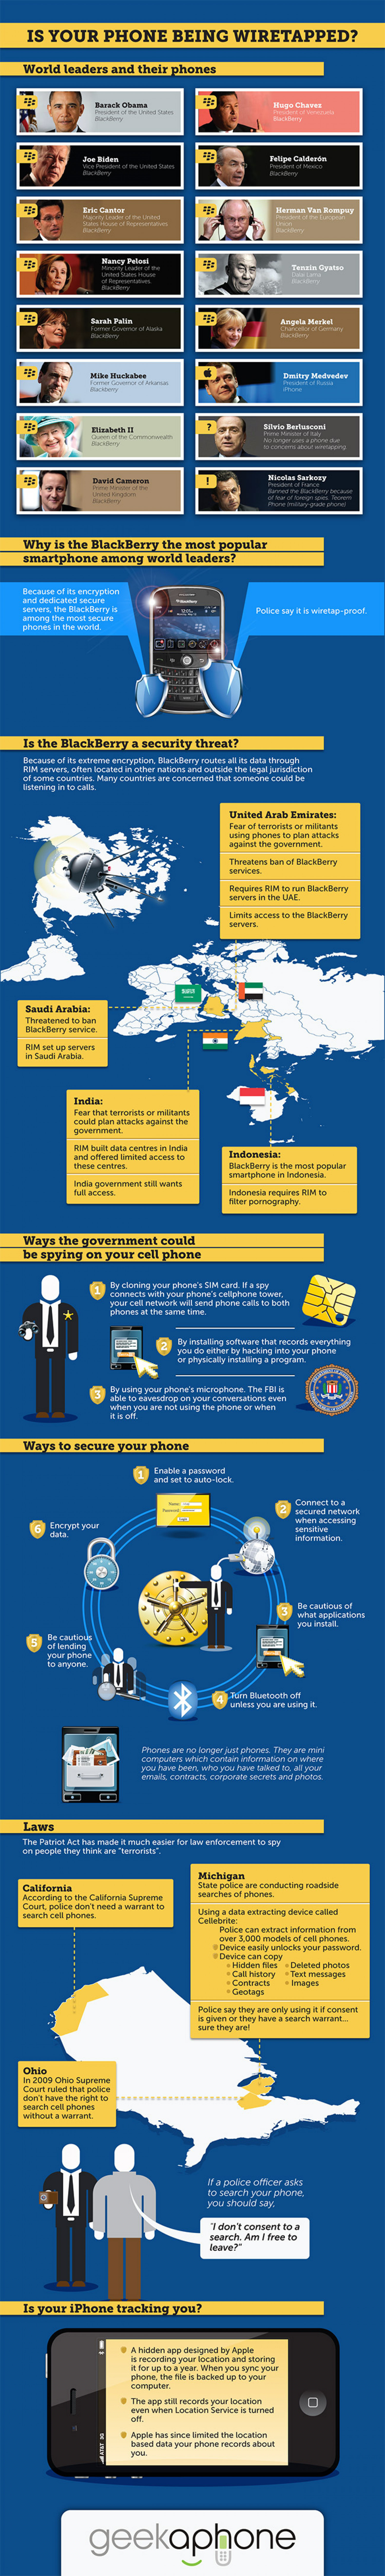 Is Your Phone Being Wiretapped? Infographic